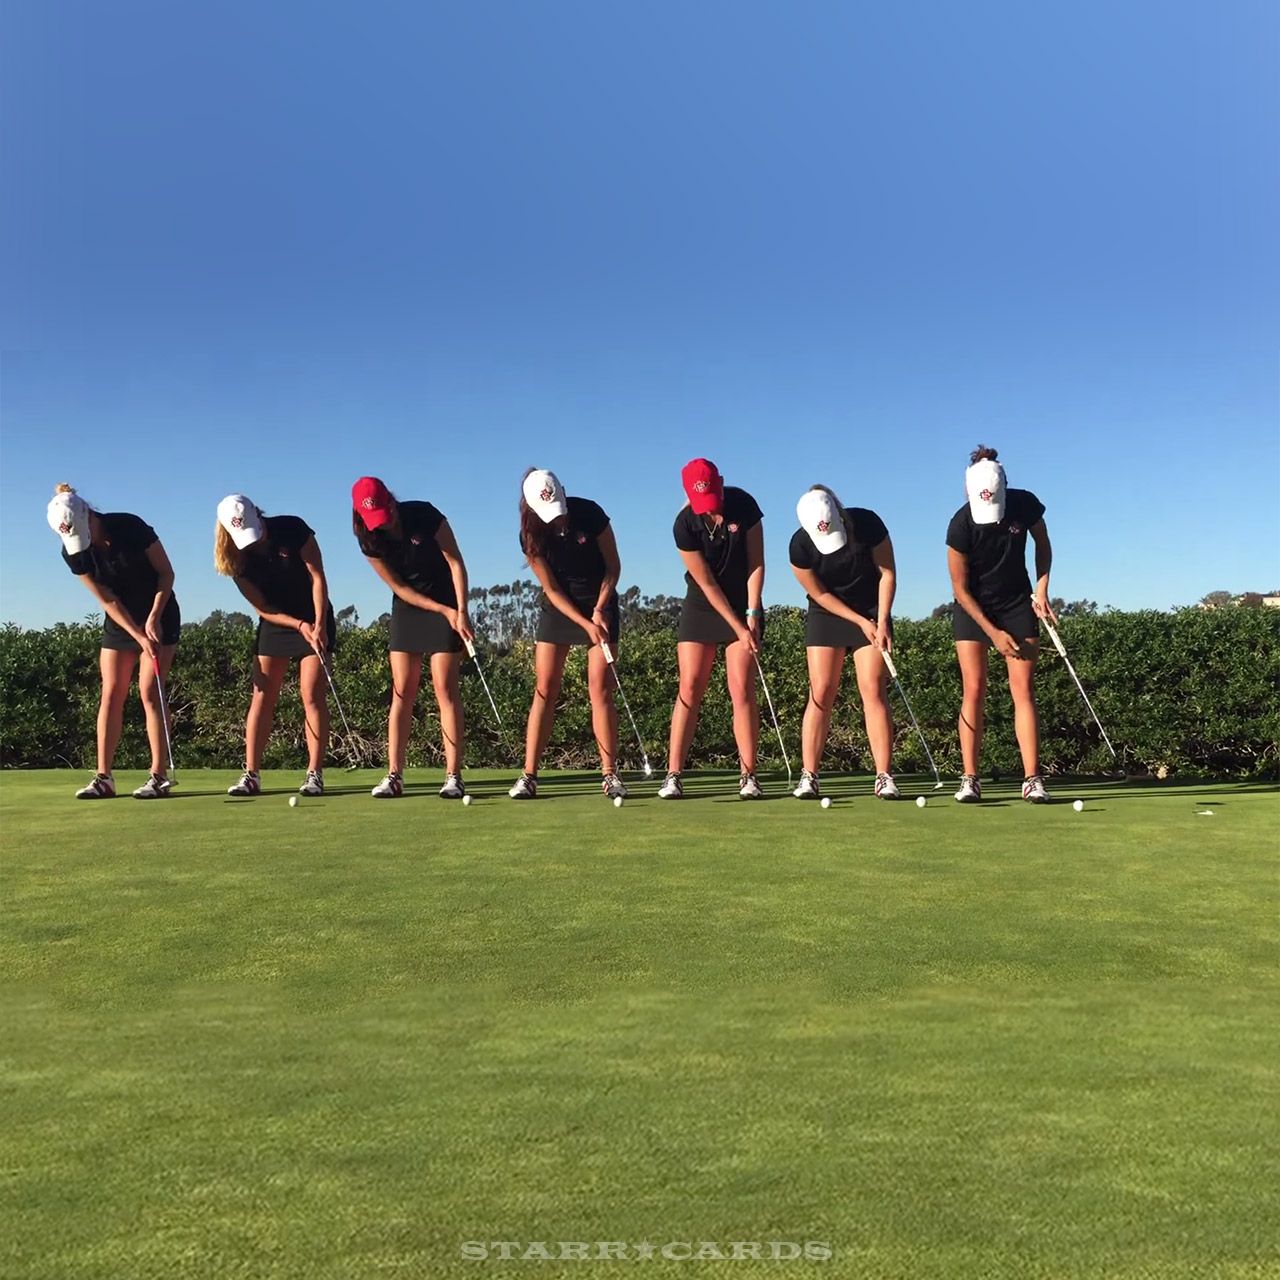 San Diego State women's golf team trick shot